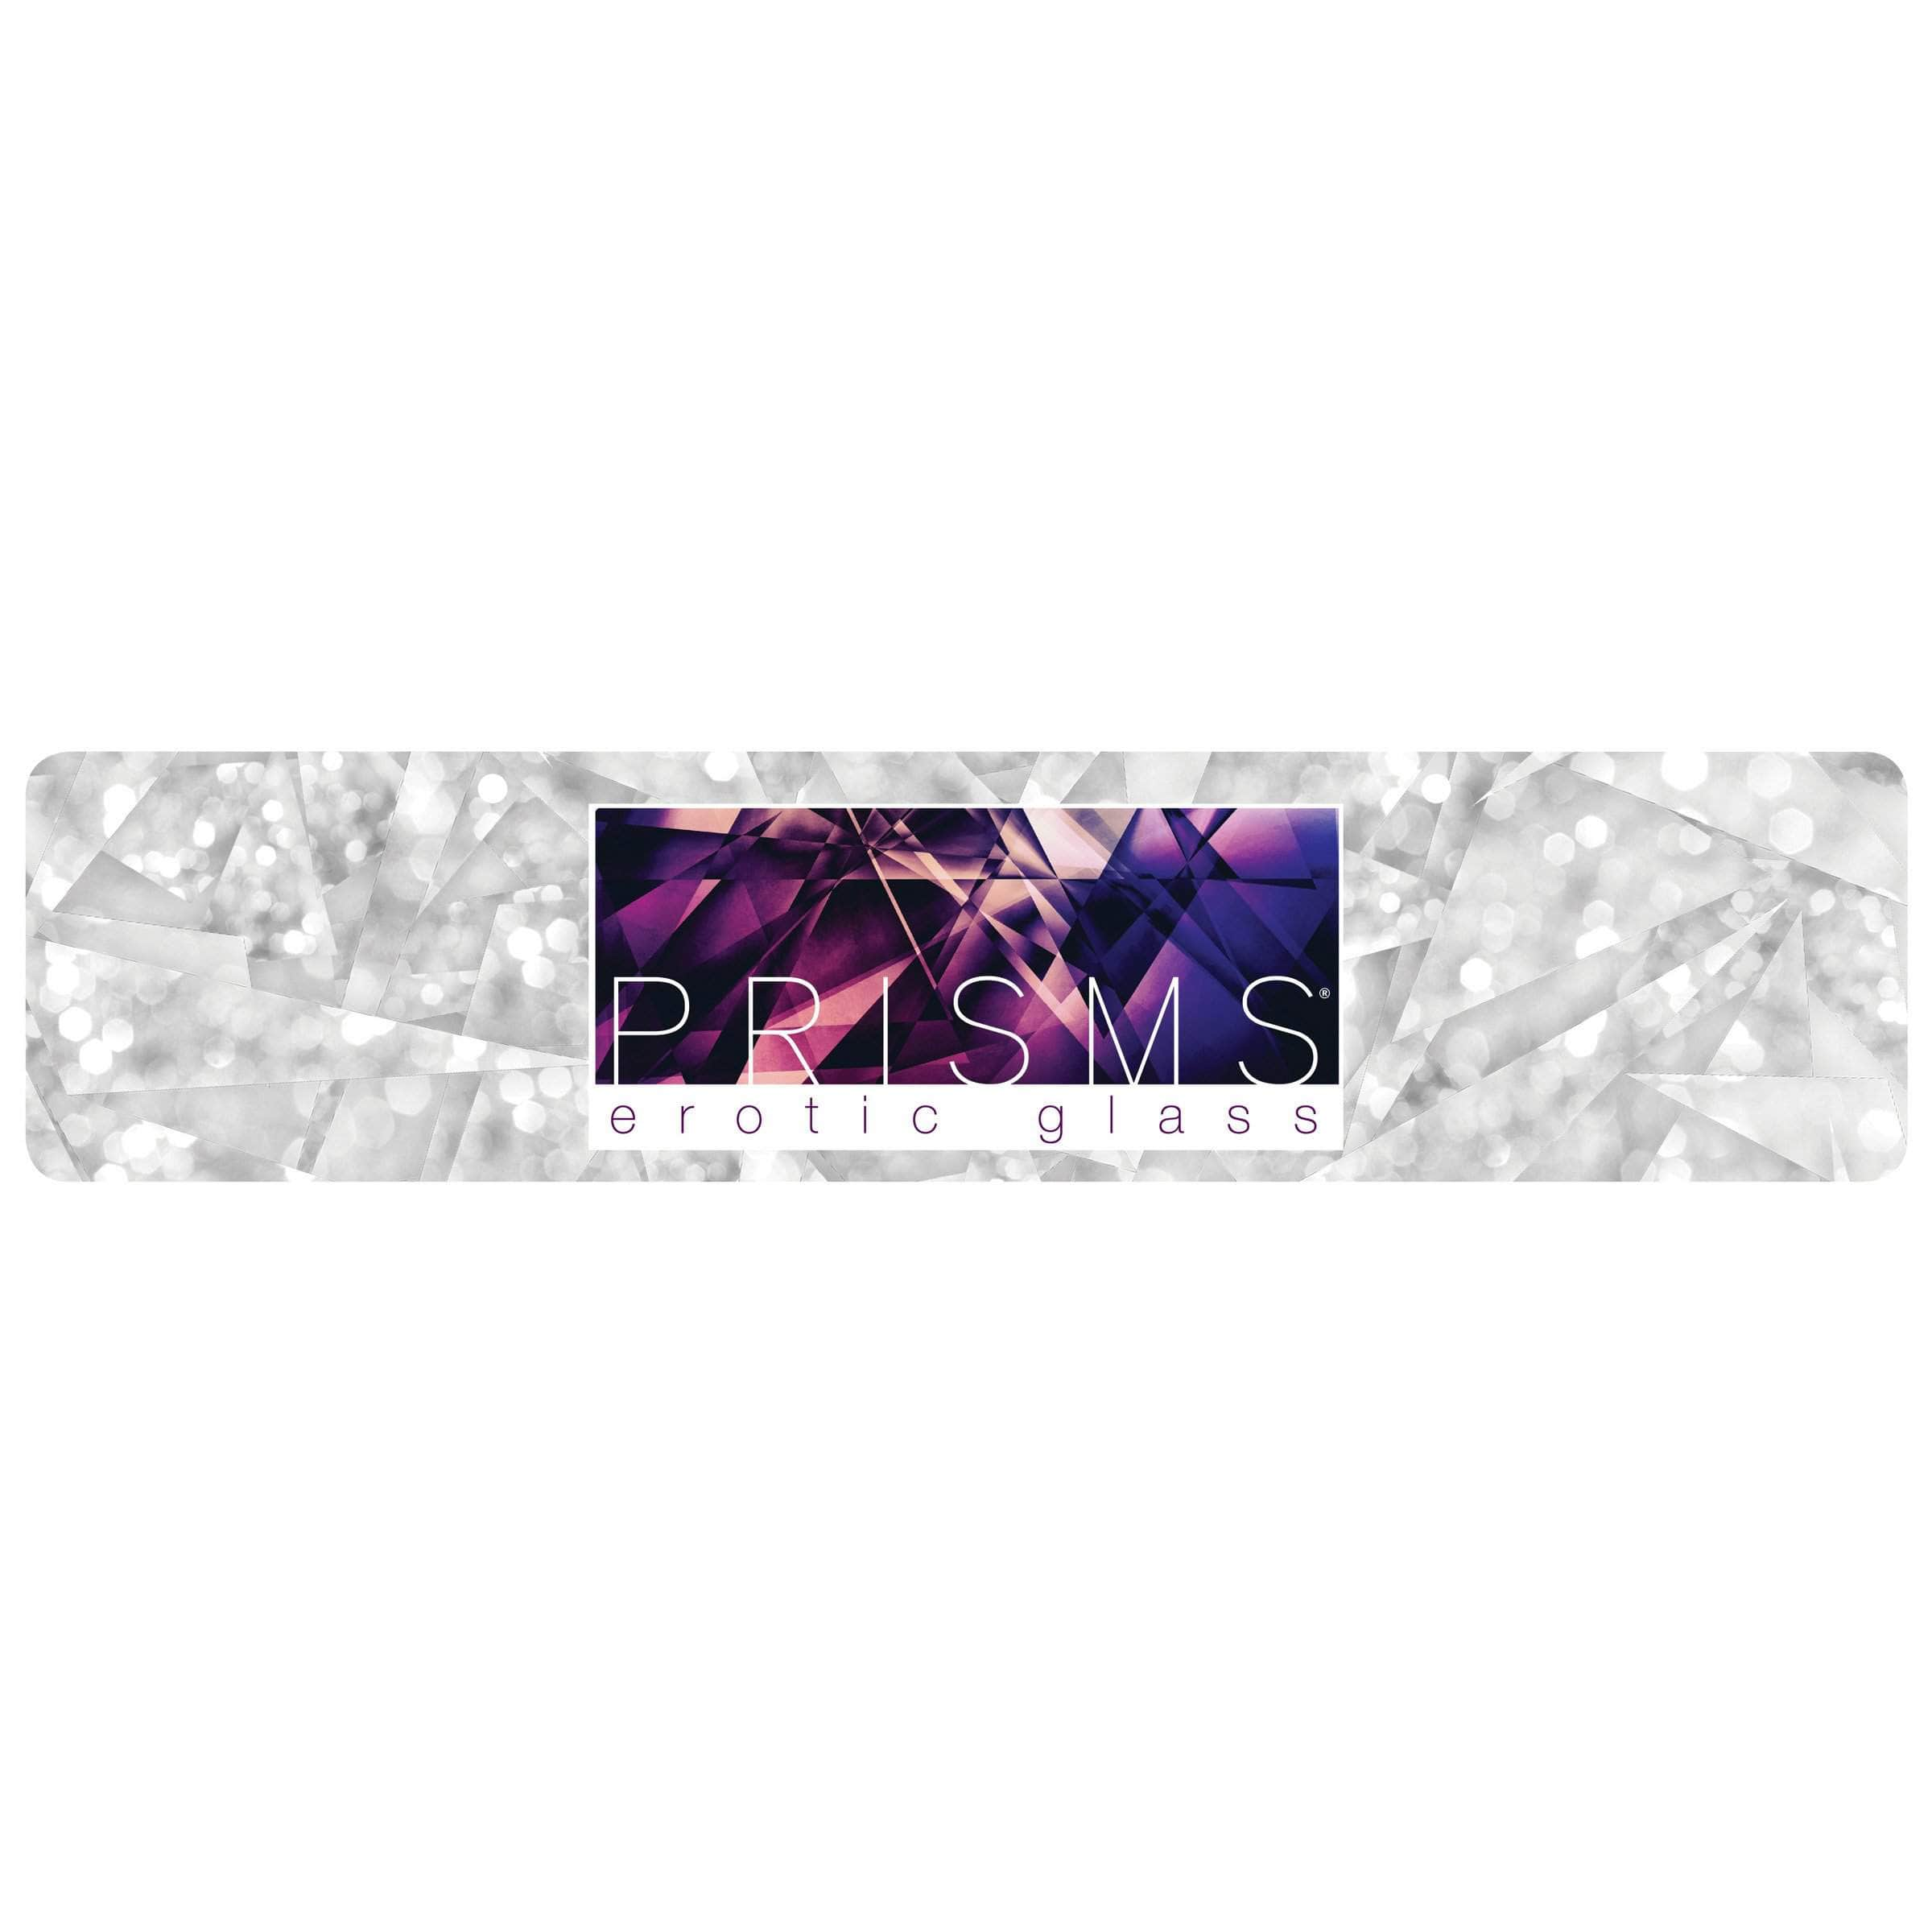 Prisms Erotic Glass Display Sign